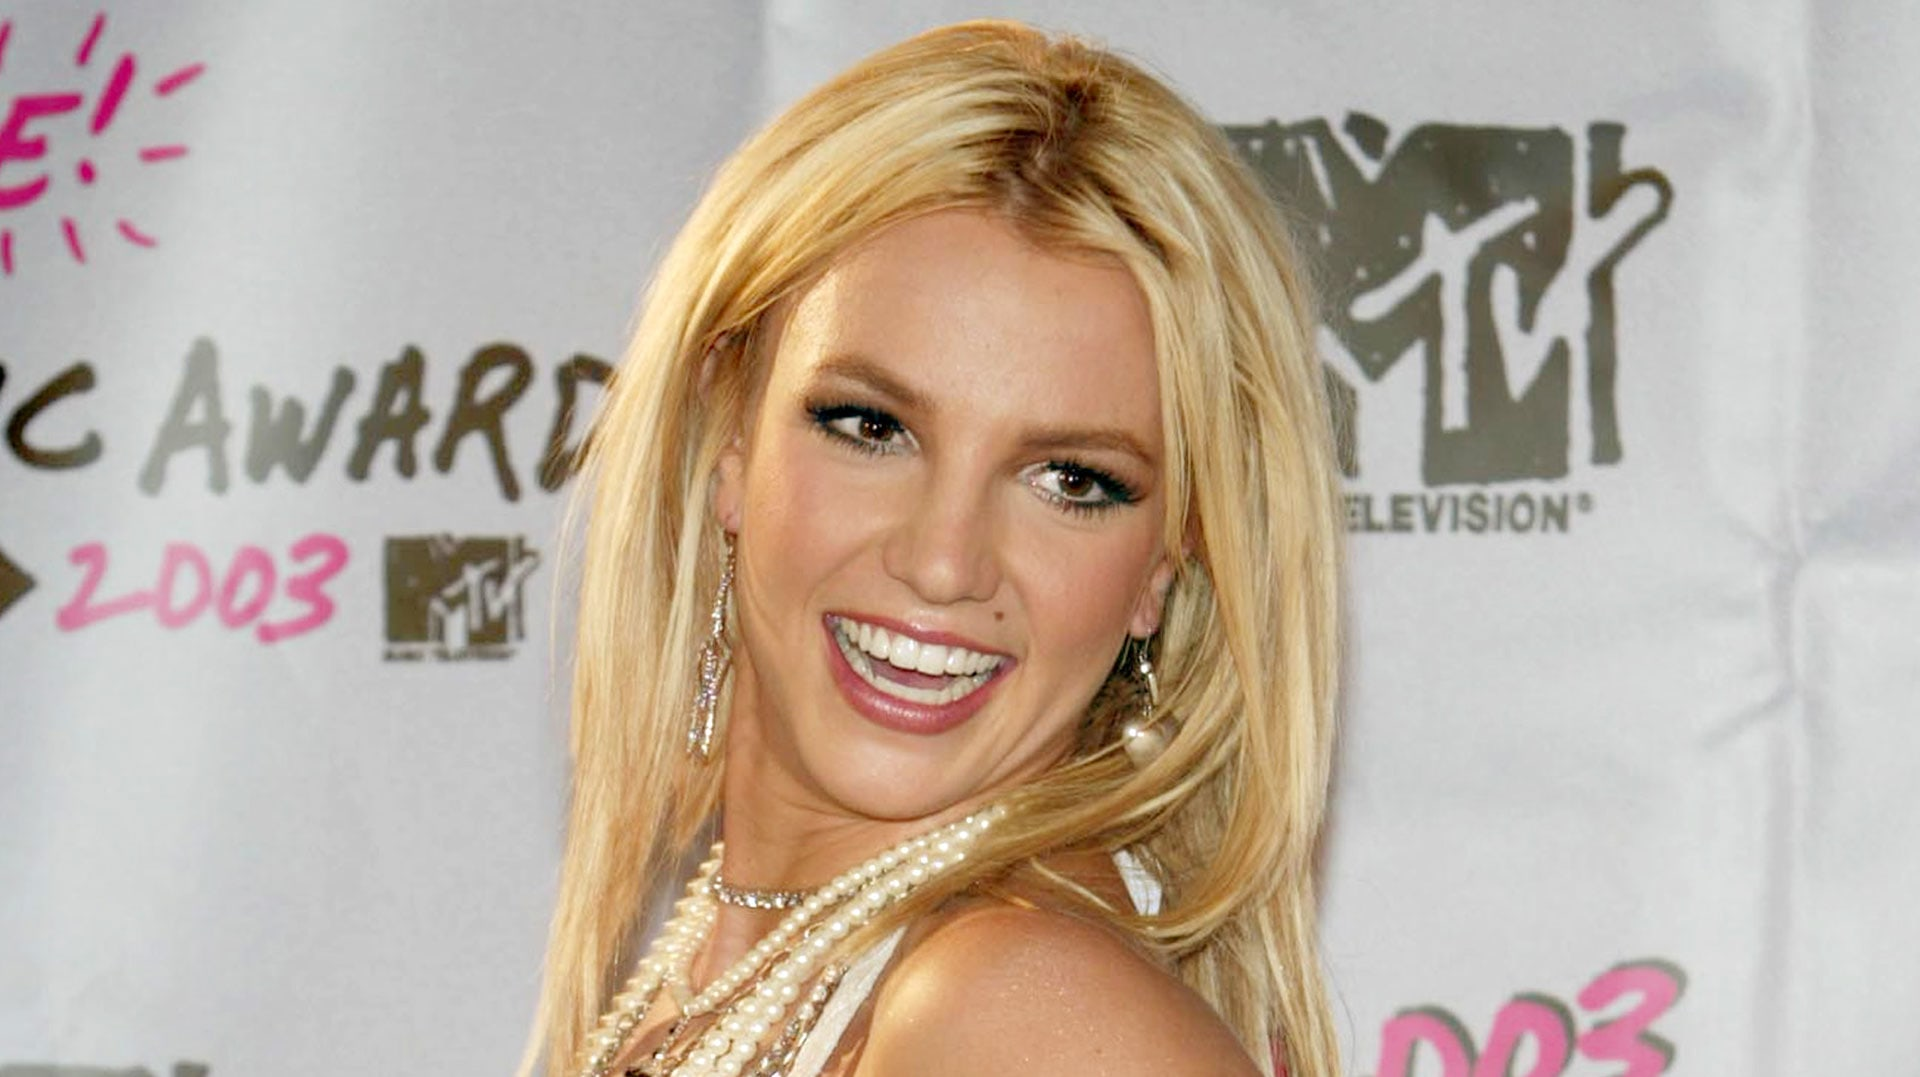 Britney spears and her impact on american culture